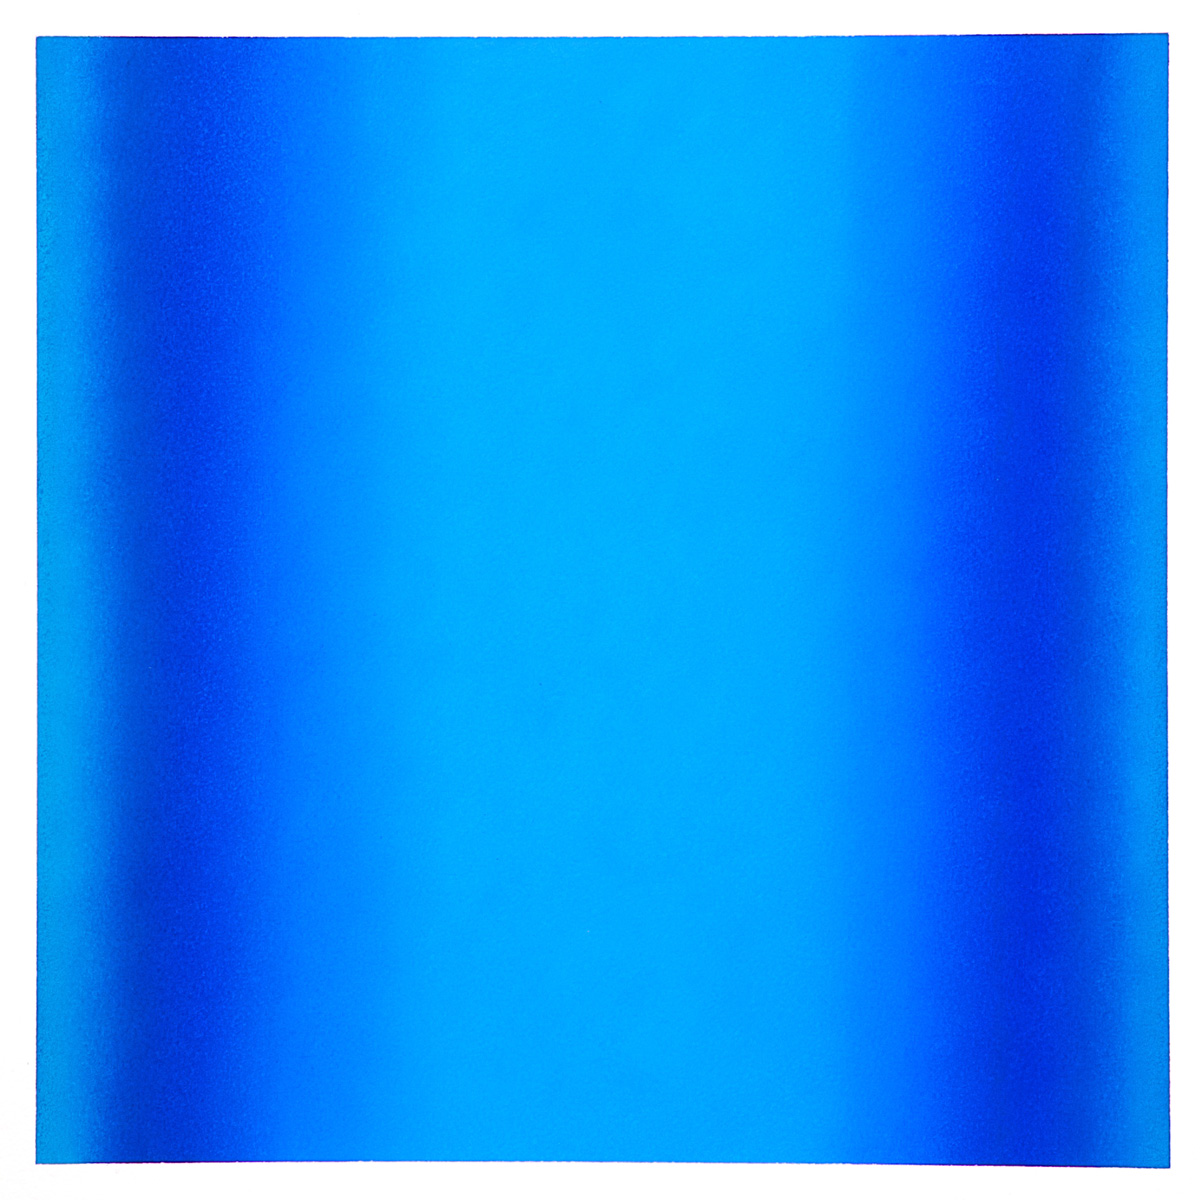 Cool-Light Prussian-Ultramarine, Interplay Series, 2012, pastel on paper, image: 14 x 14 in. (36 x 36 cm.), sheet: 30 x 22 in. (76 x 56 cm.)